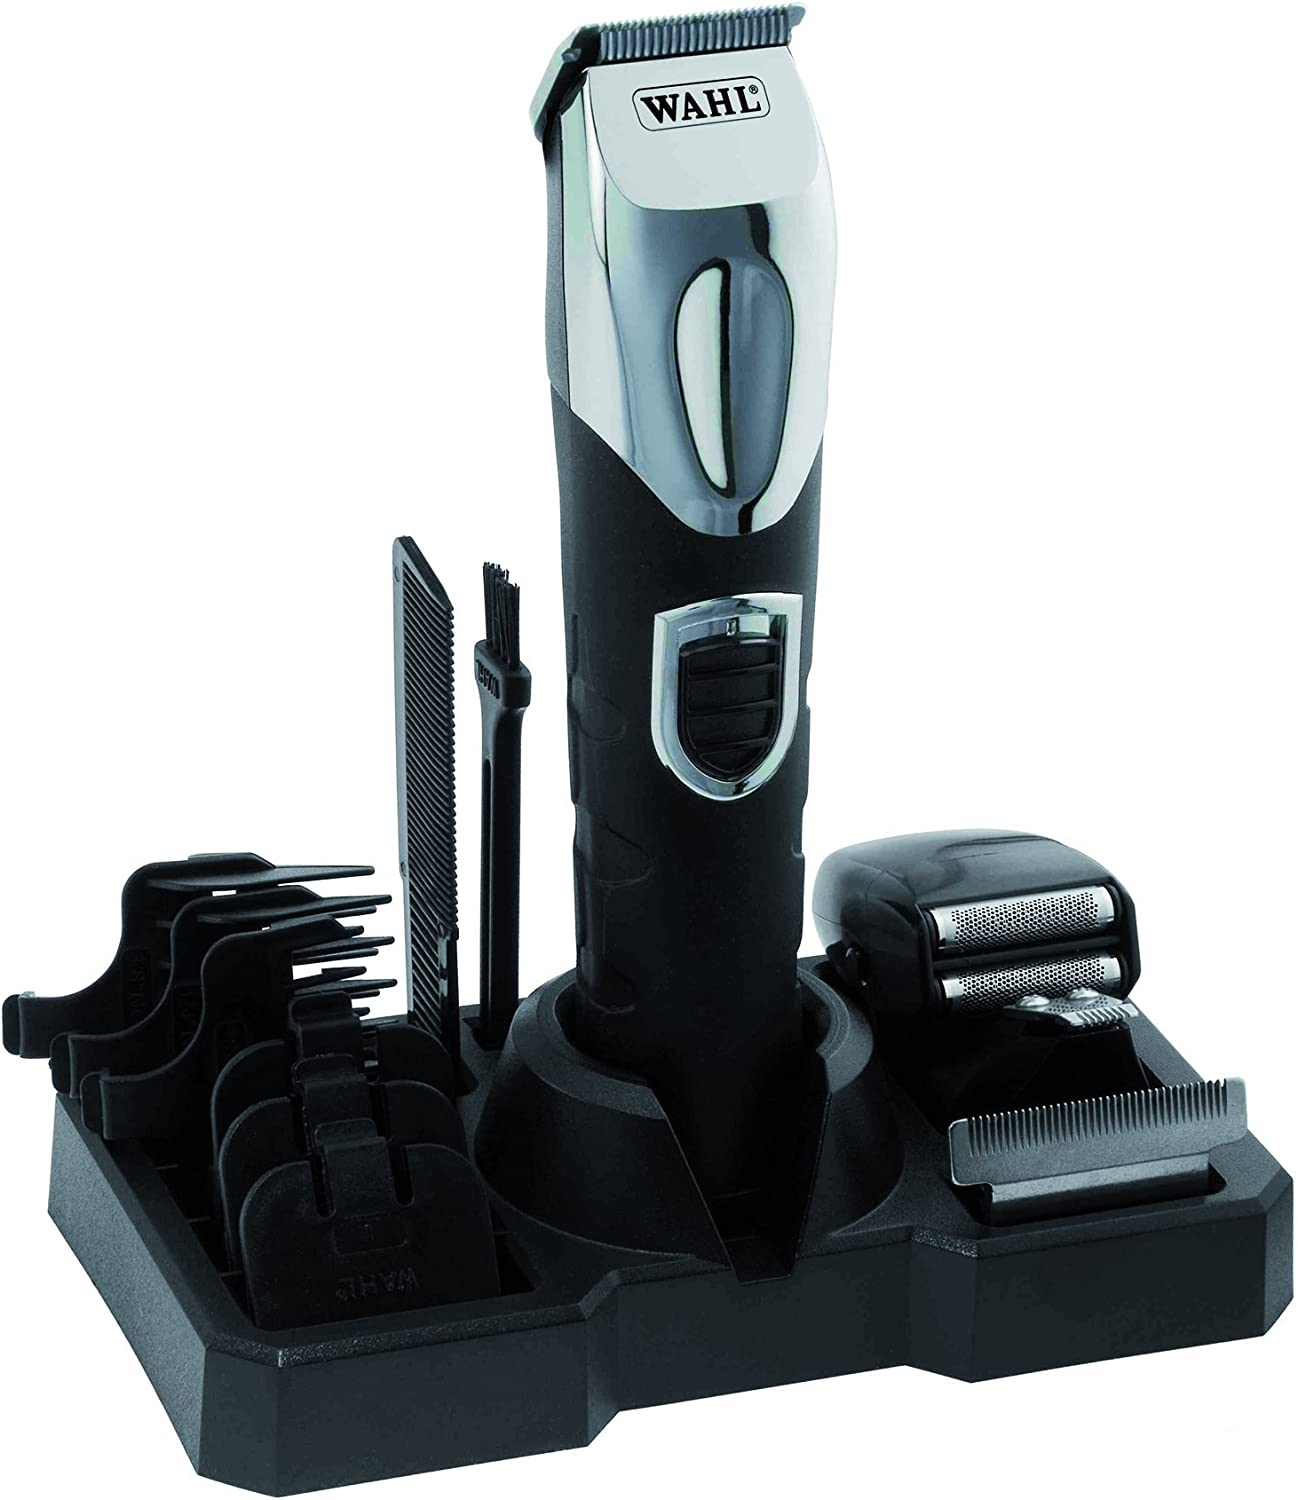 Wahl 9854-616 All in One - Cortapelos corporal con iones y litio ...